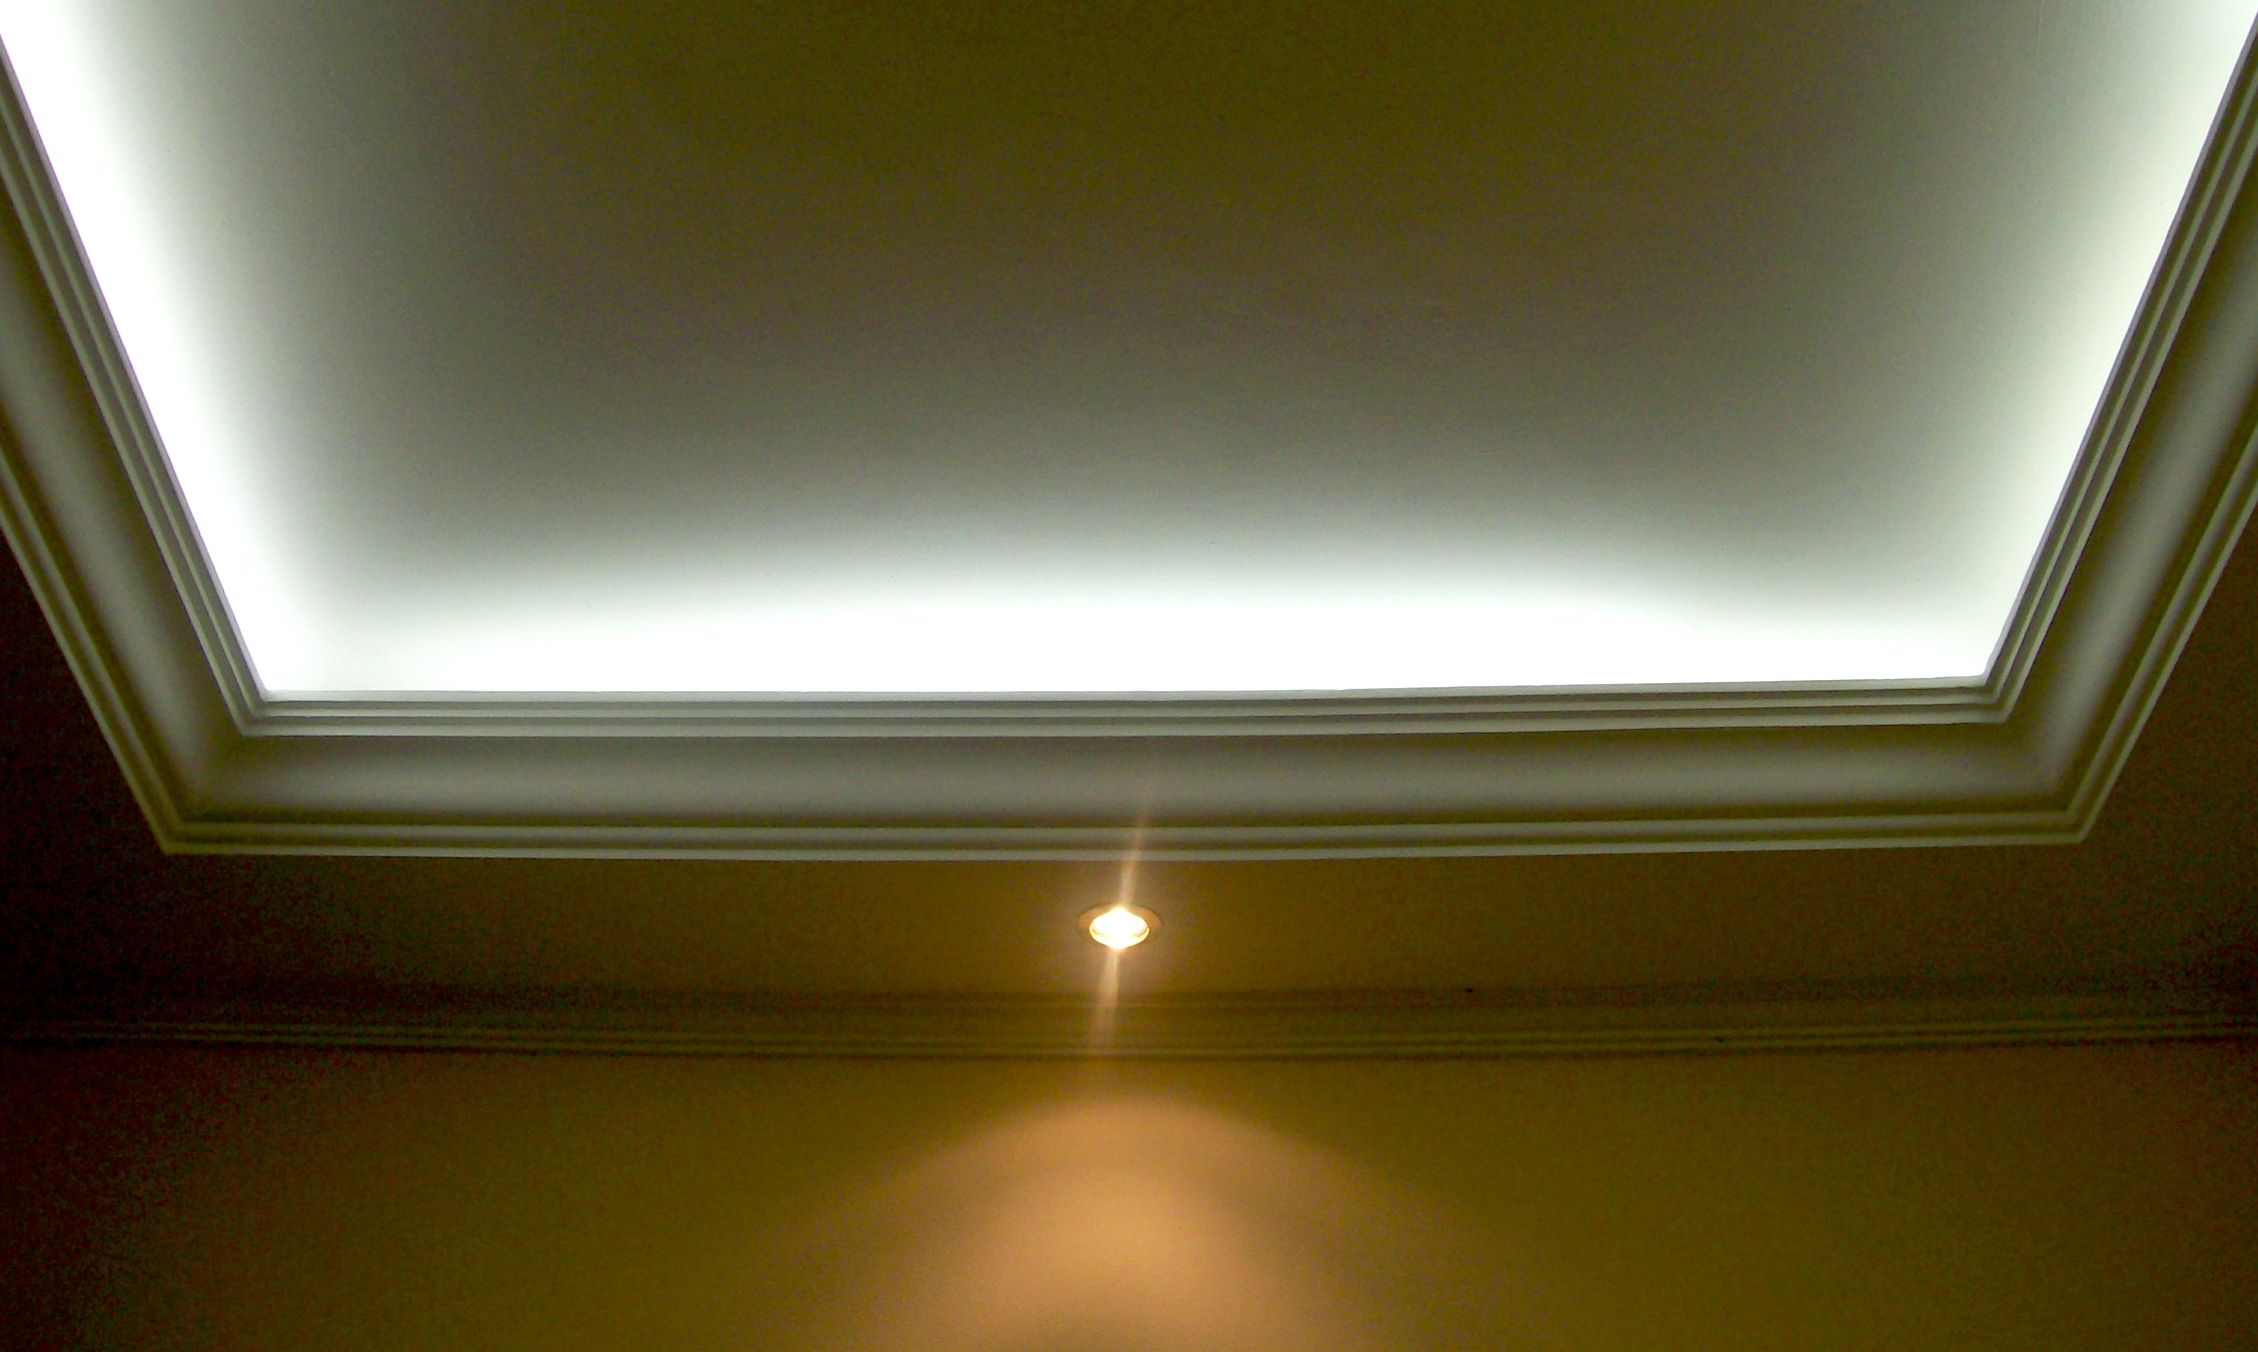 Recessed lighting to show off architectural elements interior home lighting projects - Canned lighting ideas ...